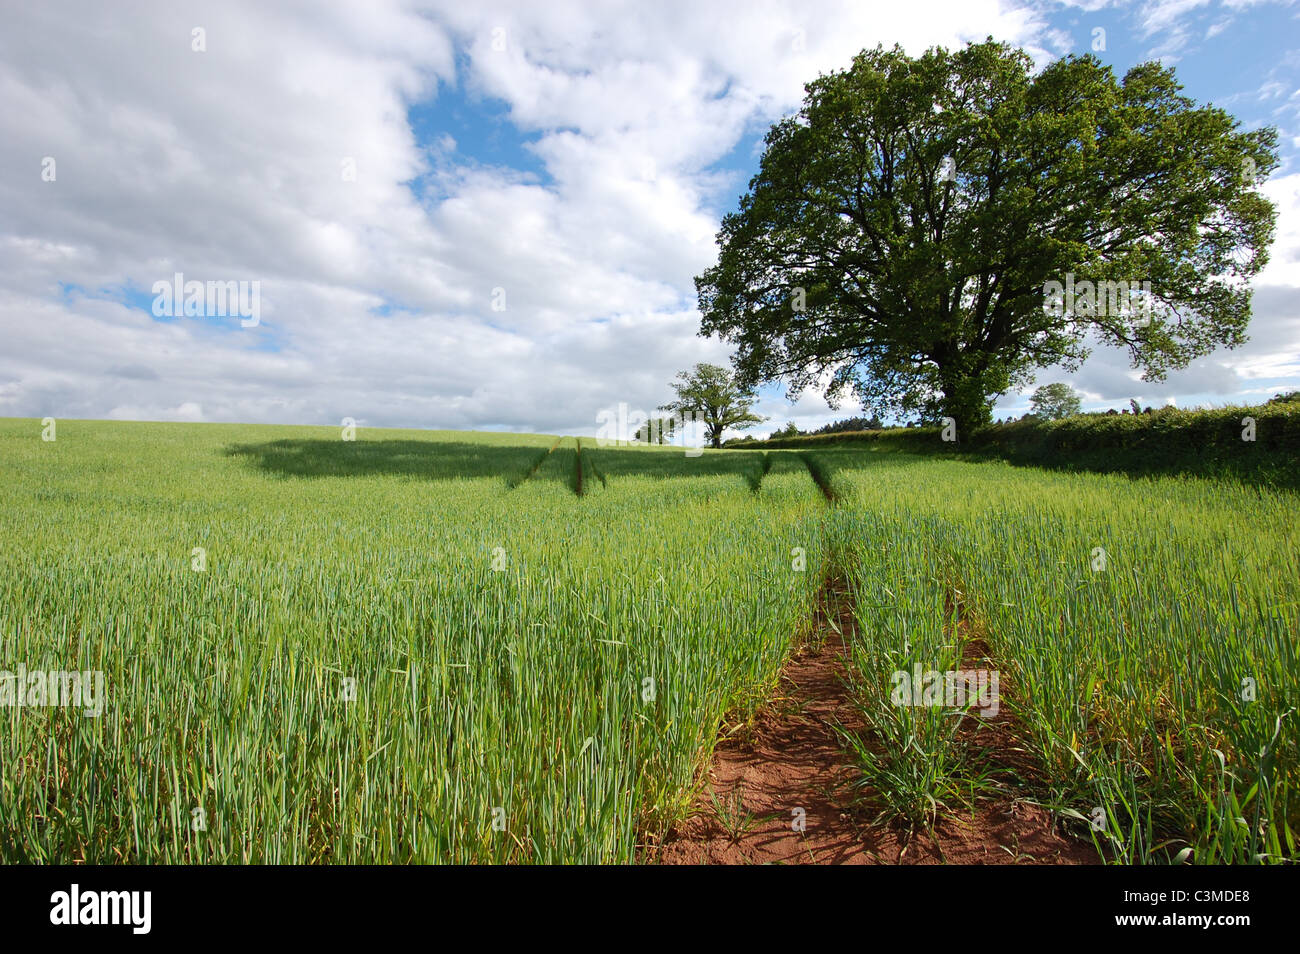 field-of-wheat-in-uk-with-an-oak-tree-C3